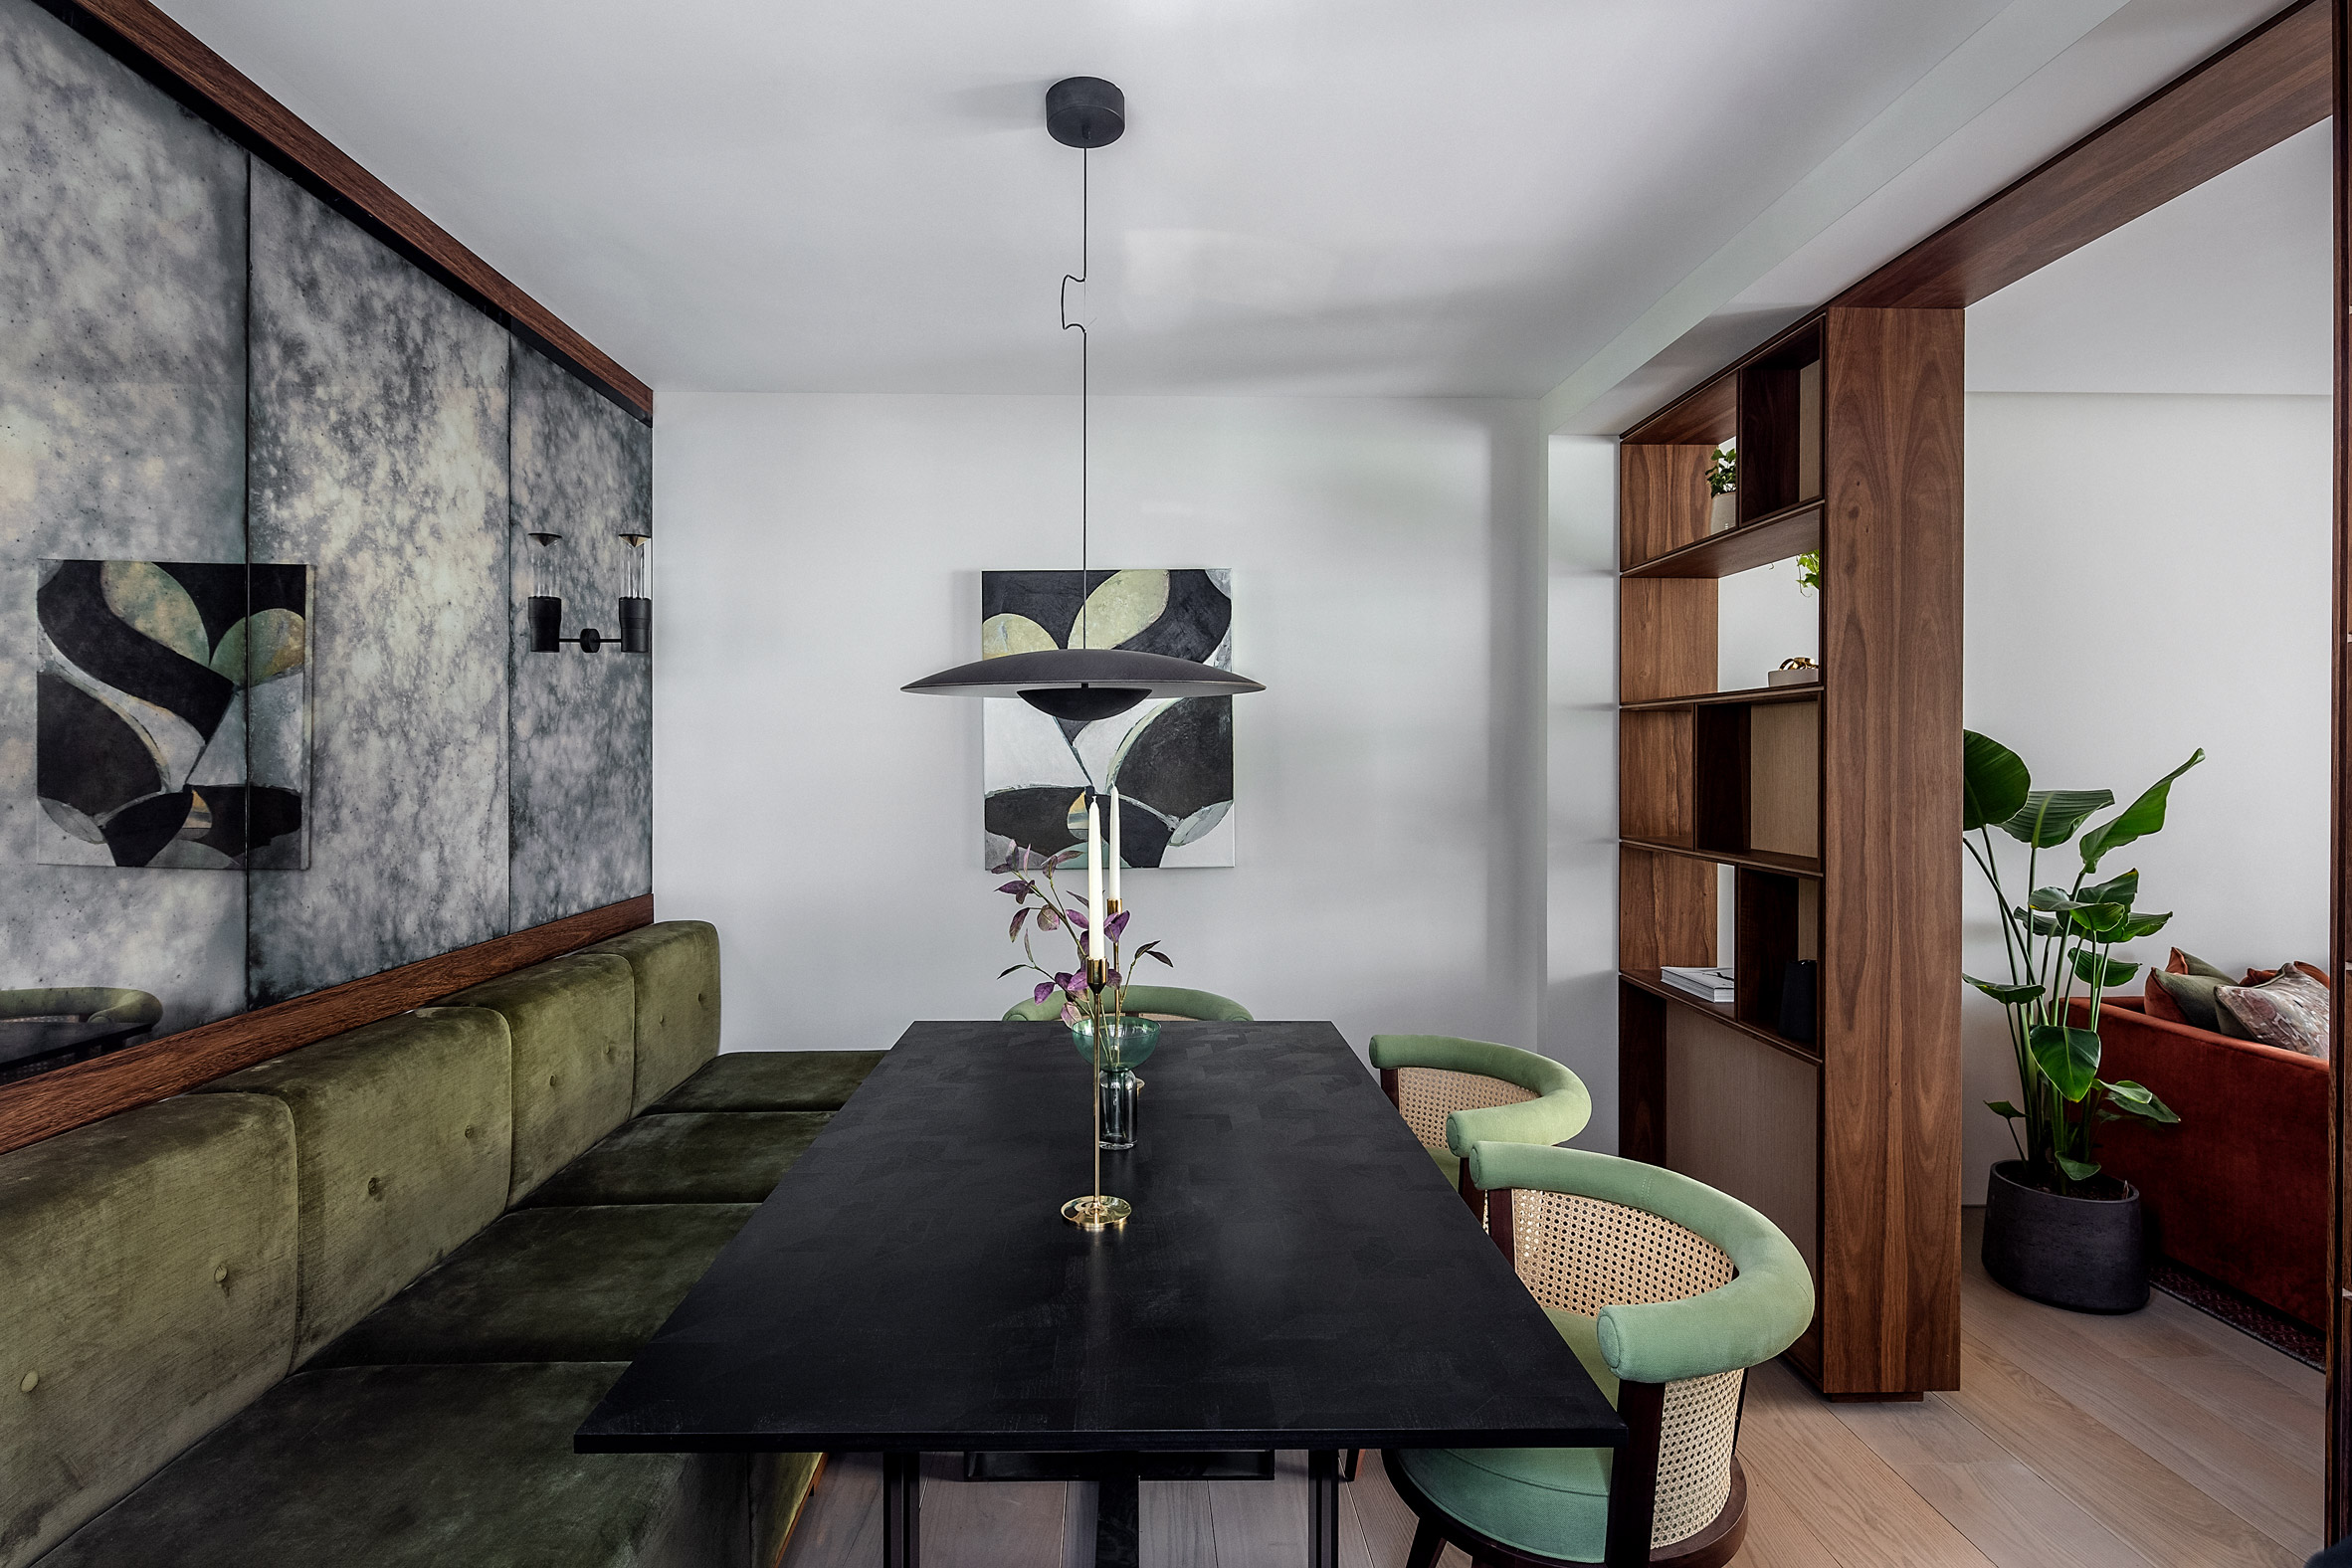 Dining area of the Knightsbridge Mews House by Echlin